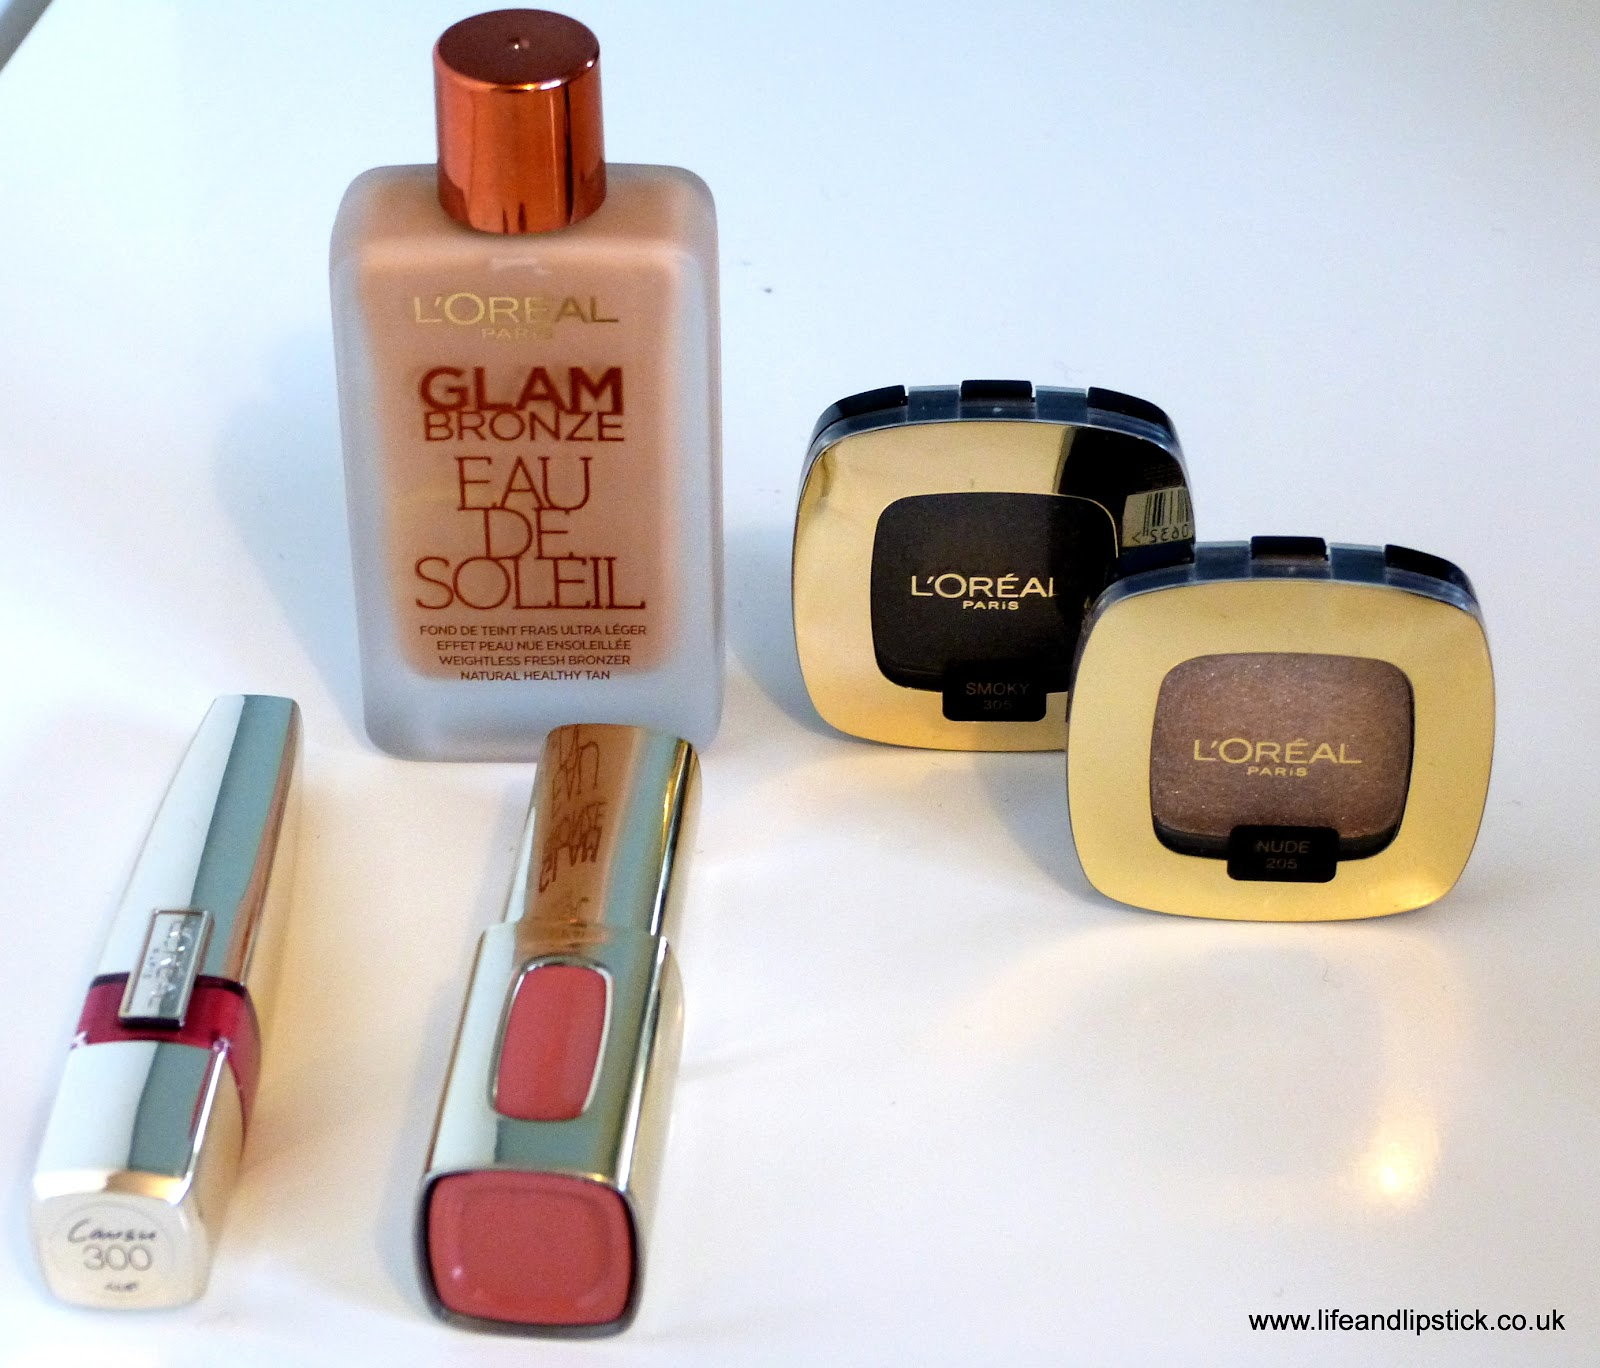 L'Oreal Haul Collective Beauty Haul